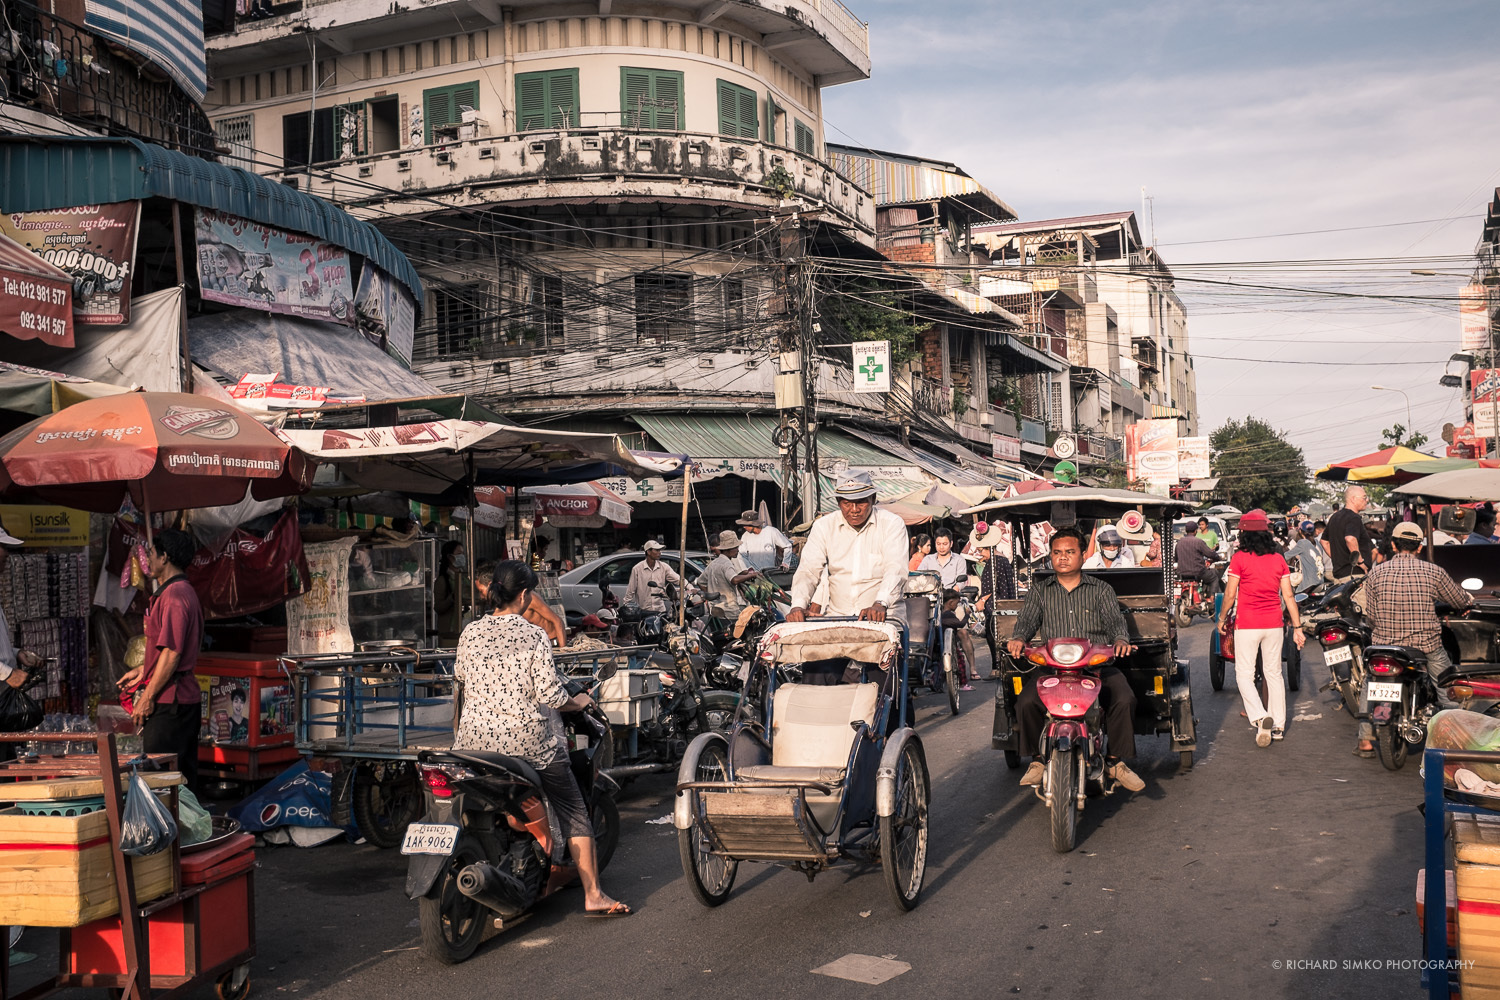 Bustling streets of Phnom Penh in late afternoon.